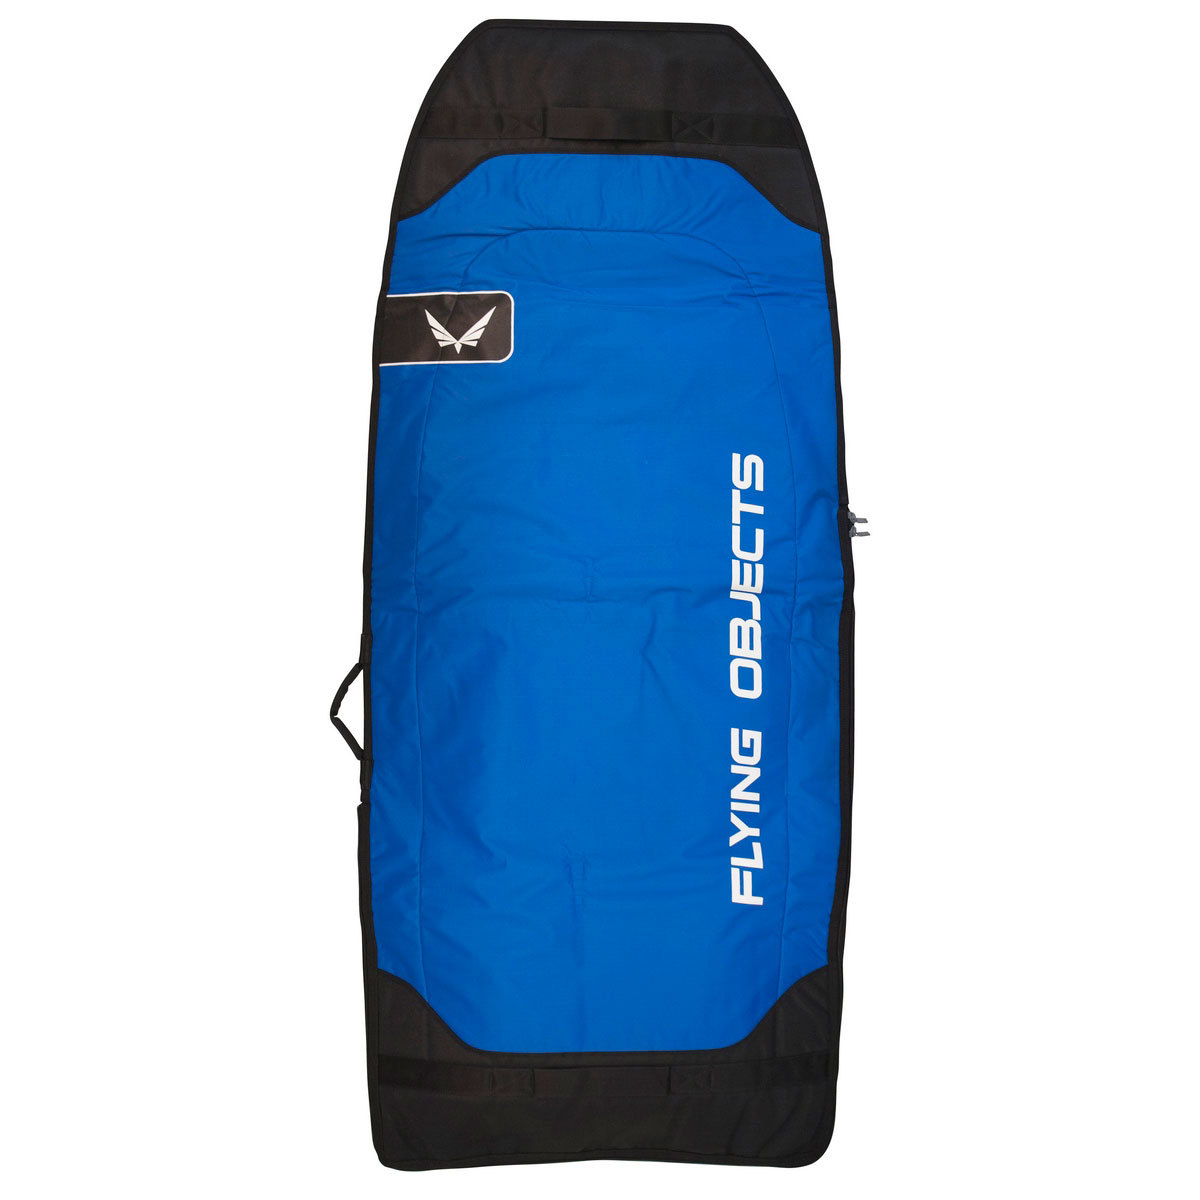 Flying Objects FORMULA KITE RACE Daybag